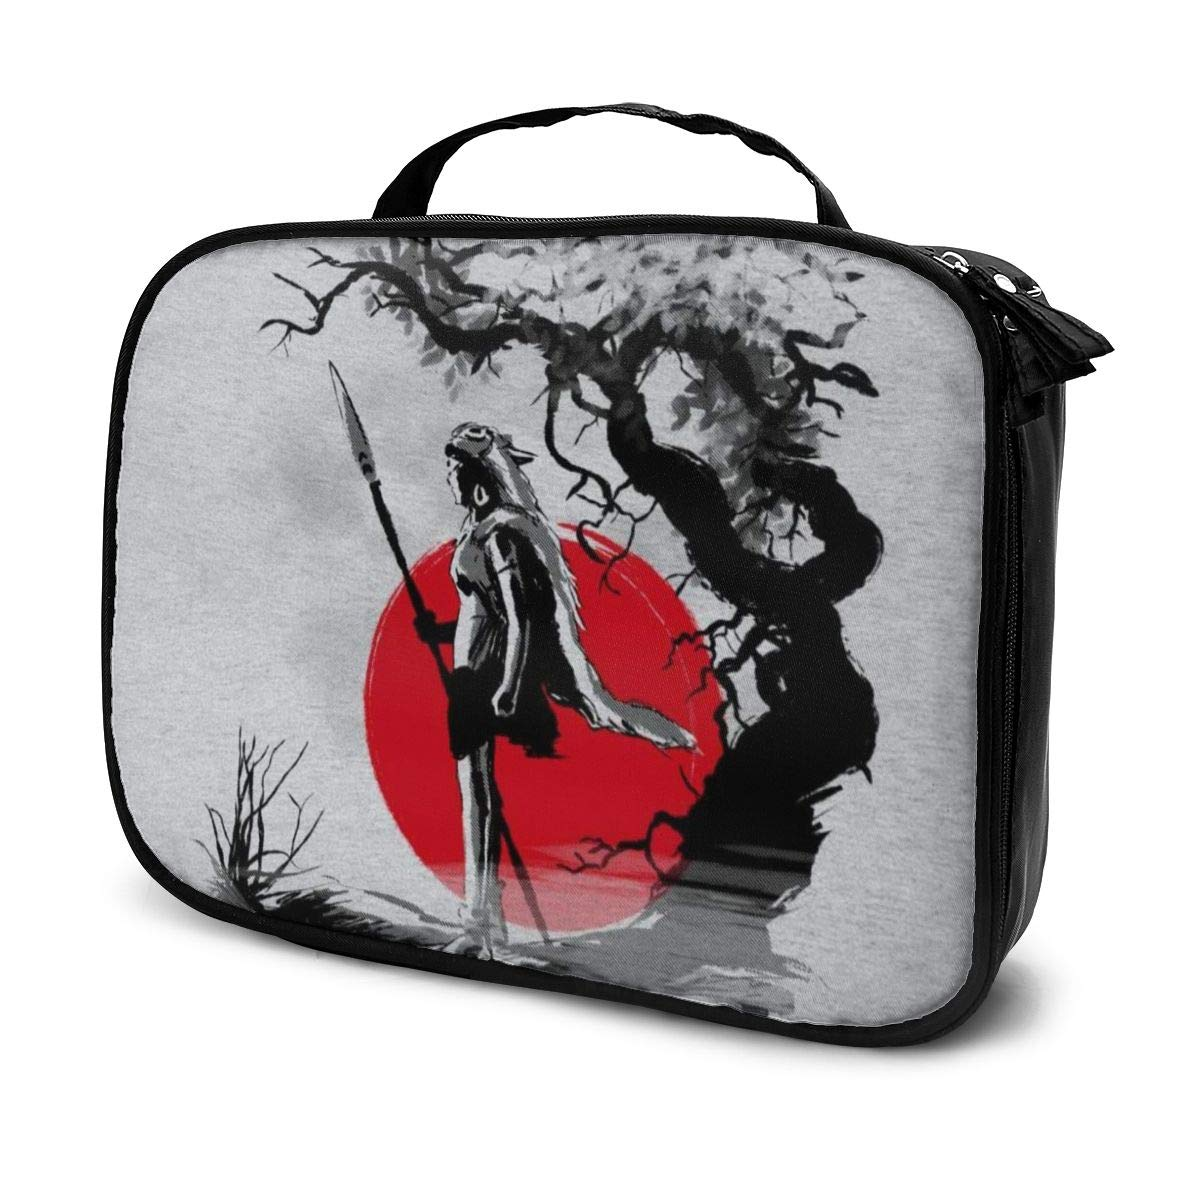 Makeup Bag Cosmetic Pouch Princess Mononoke Forest Protector Sumie Multi-Functional Bag Travel Kit